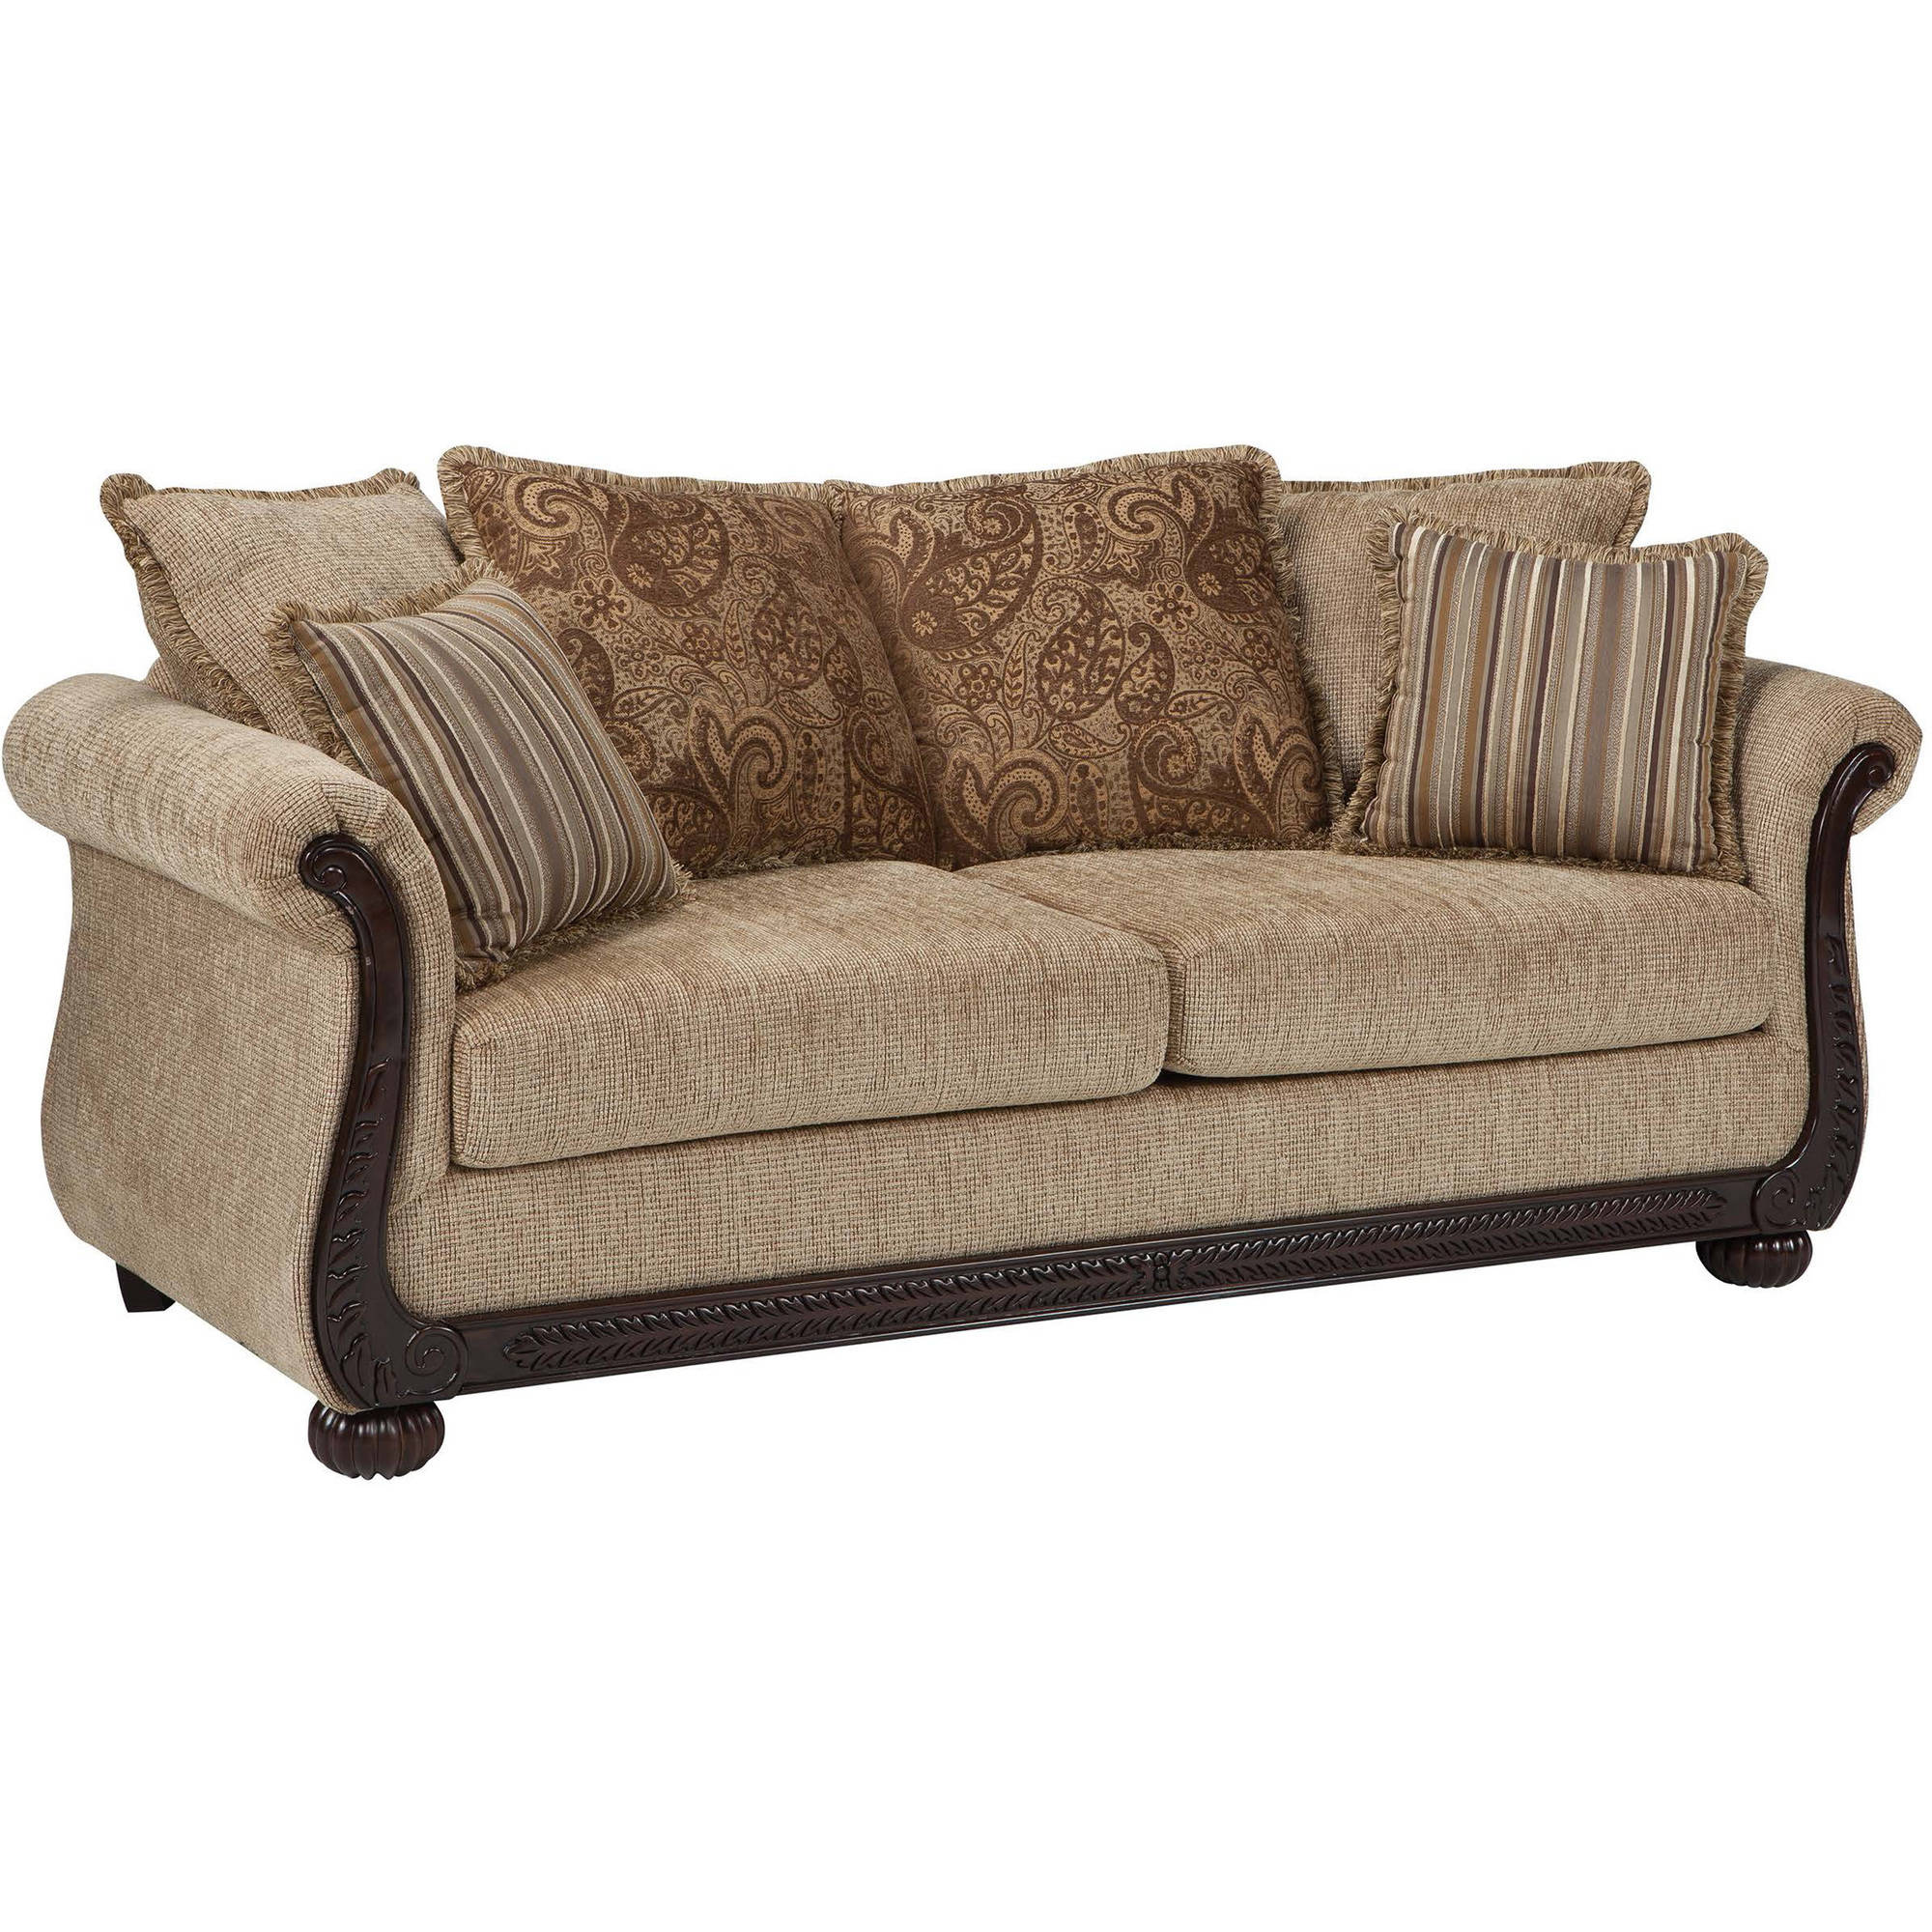 Coaster Company Beasley Sofa, Brown Chenille